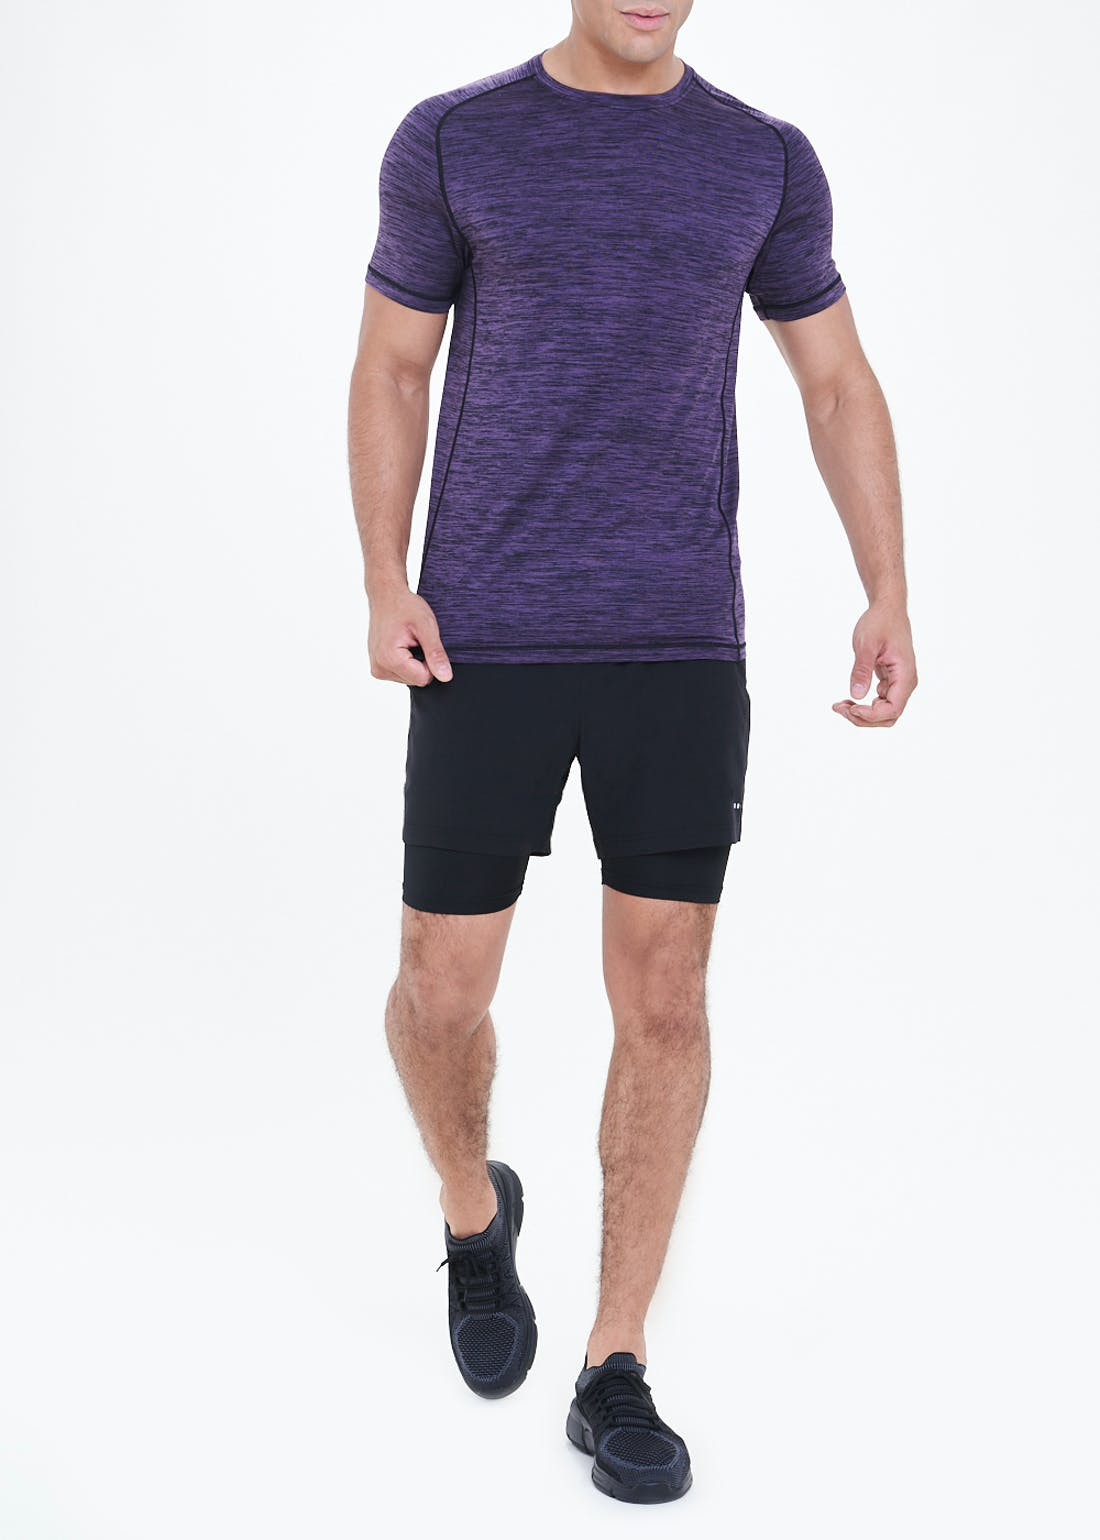 Souluxe Black 2 in 1 Gym Shorts